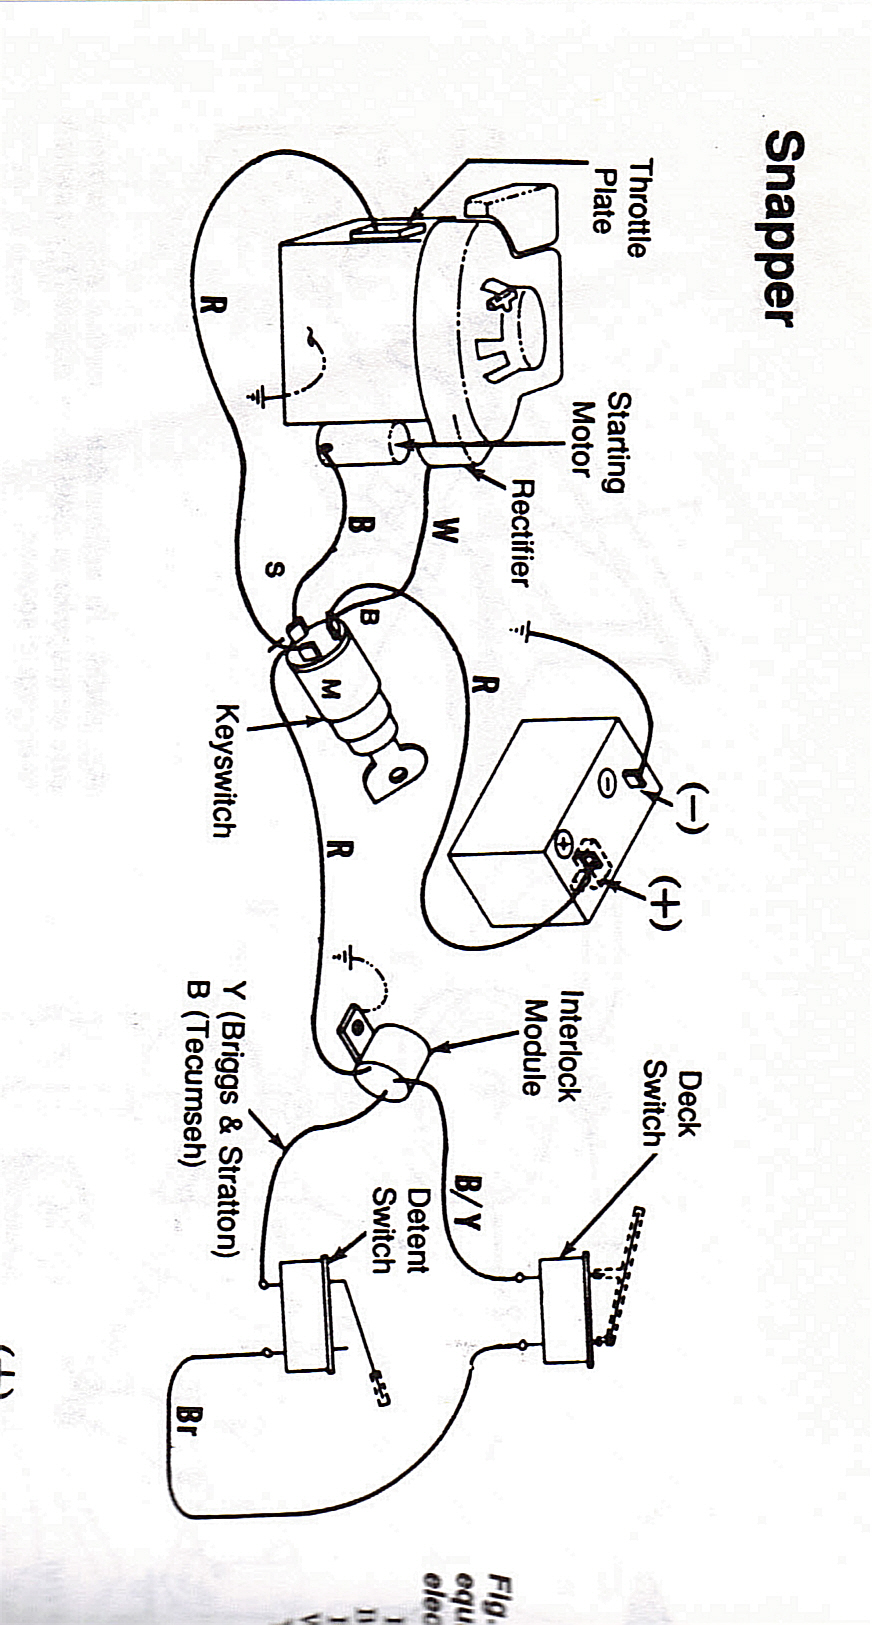 snapper pro briggs and stratton 28 hp wiring diagram